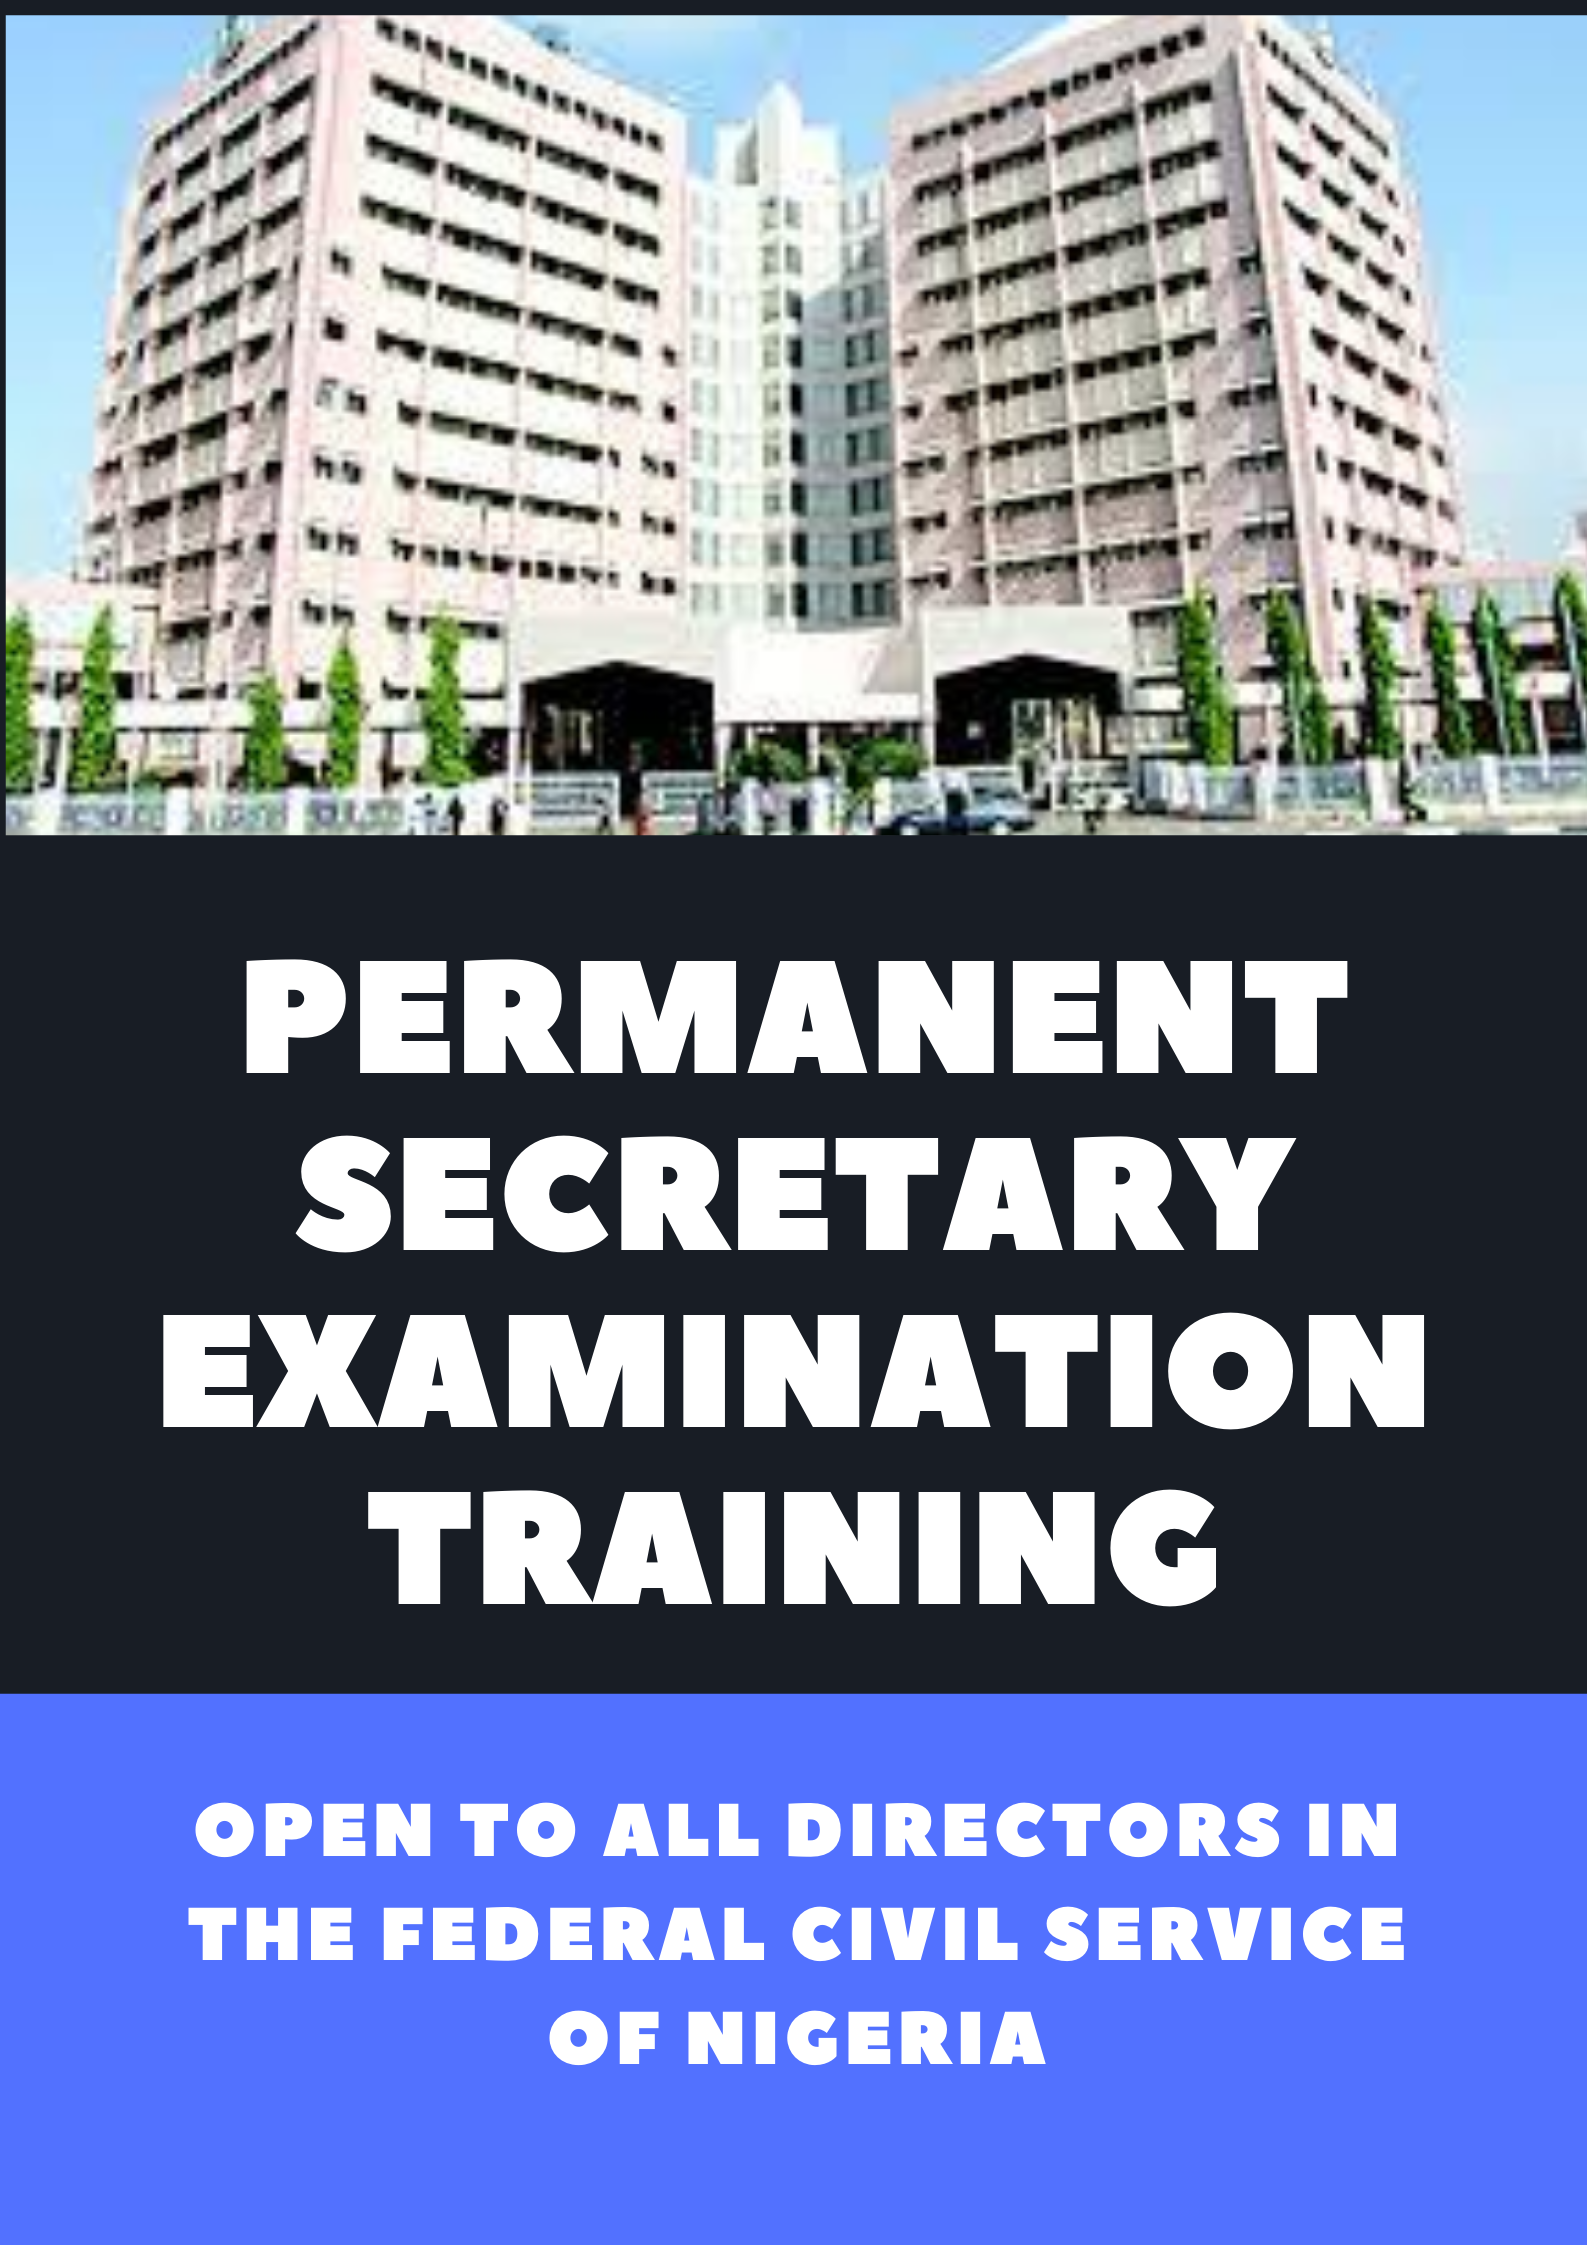 PERMANENT SECRETARY EXAMINATION TRAINING